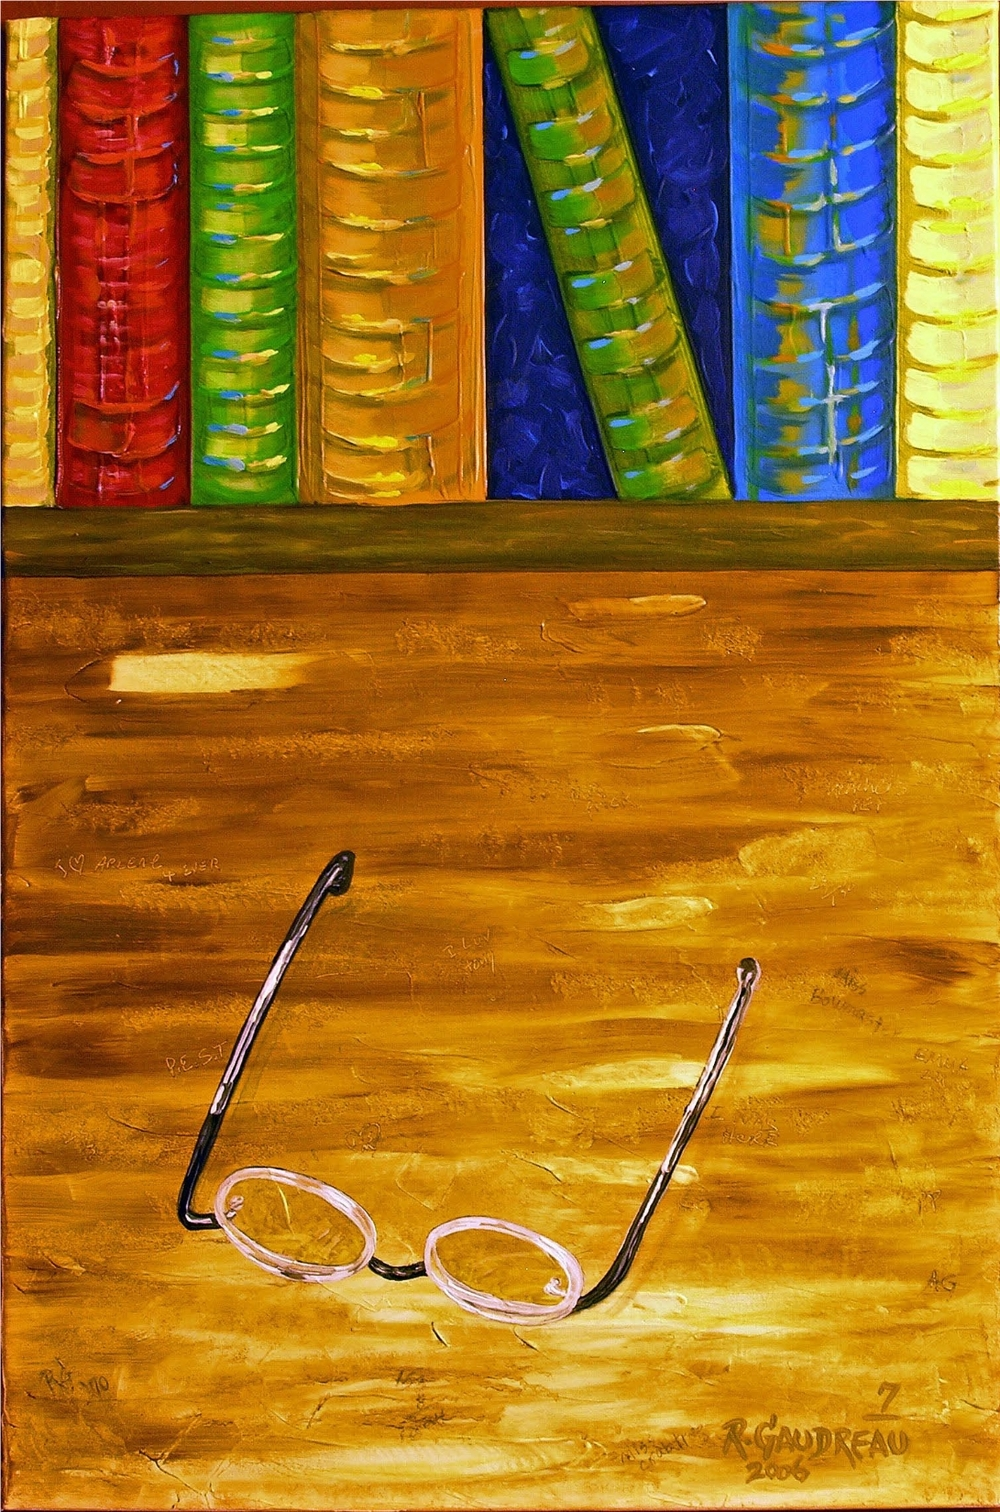 7 Books    2006 oil on canvas 36 x 24 inches